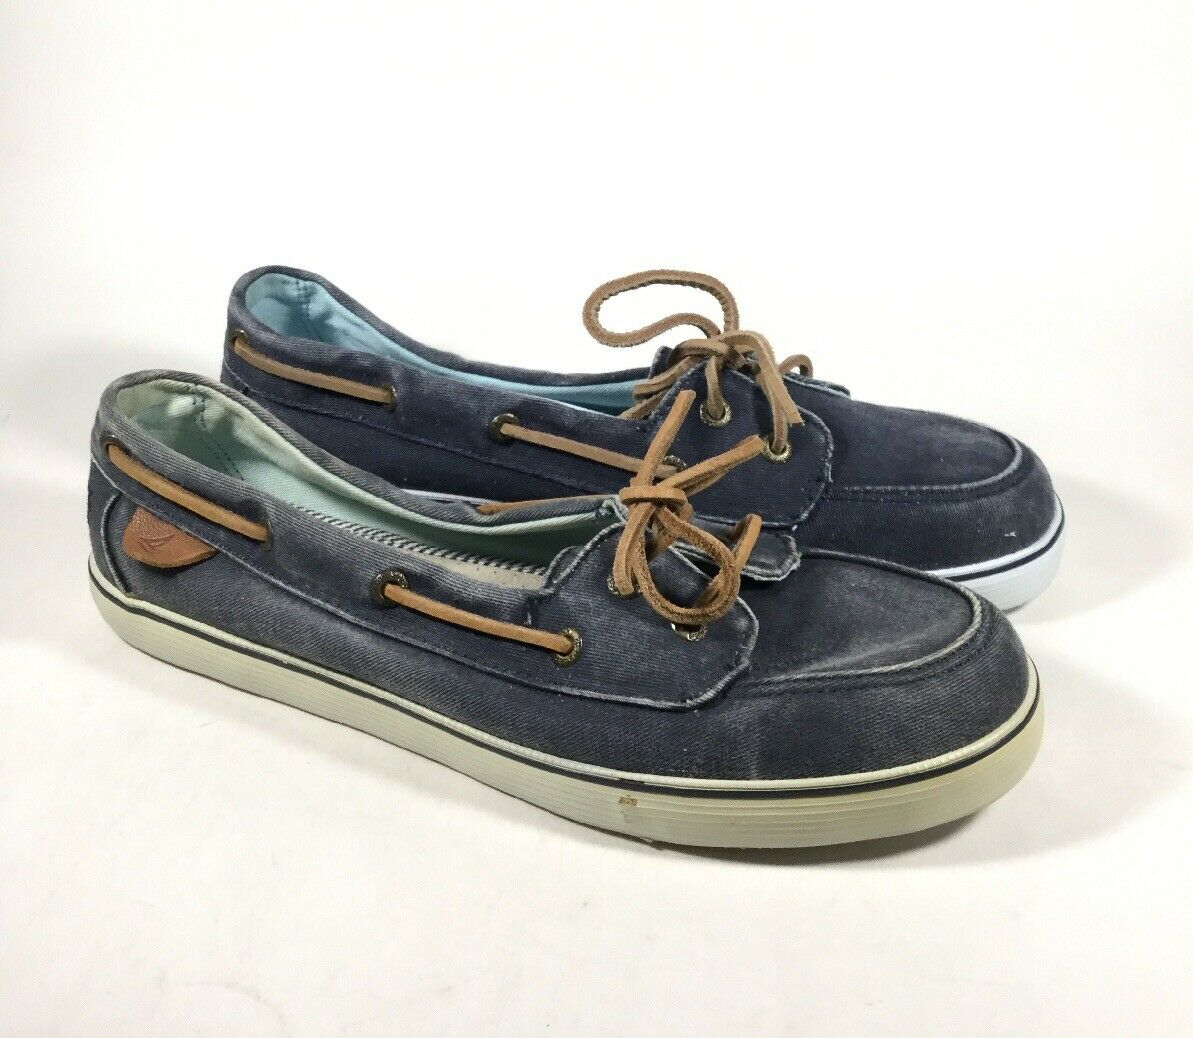 M4638 PreOwned Women's Sperry Top Sider Malibu Navy Boat shoes US 7 M